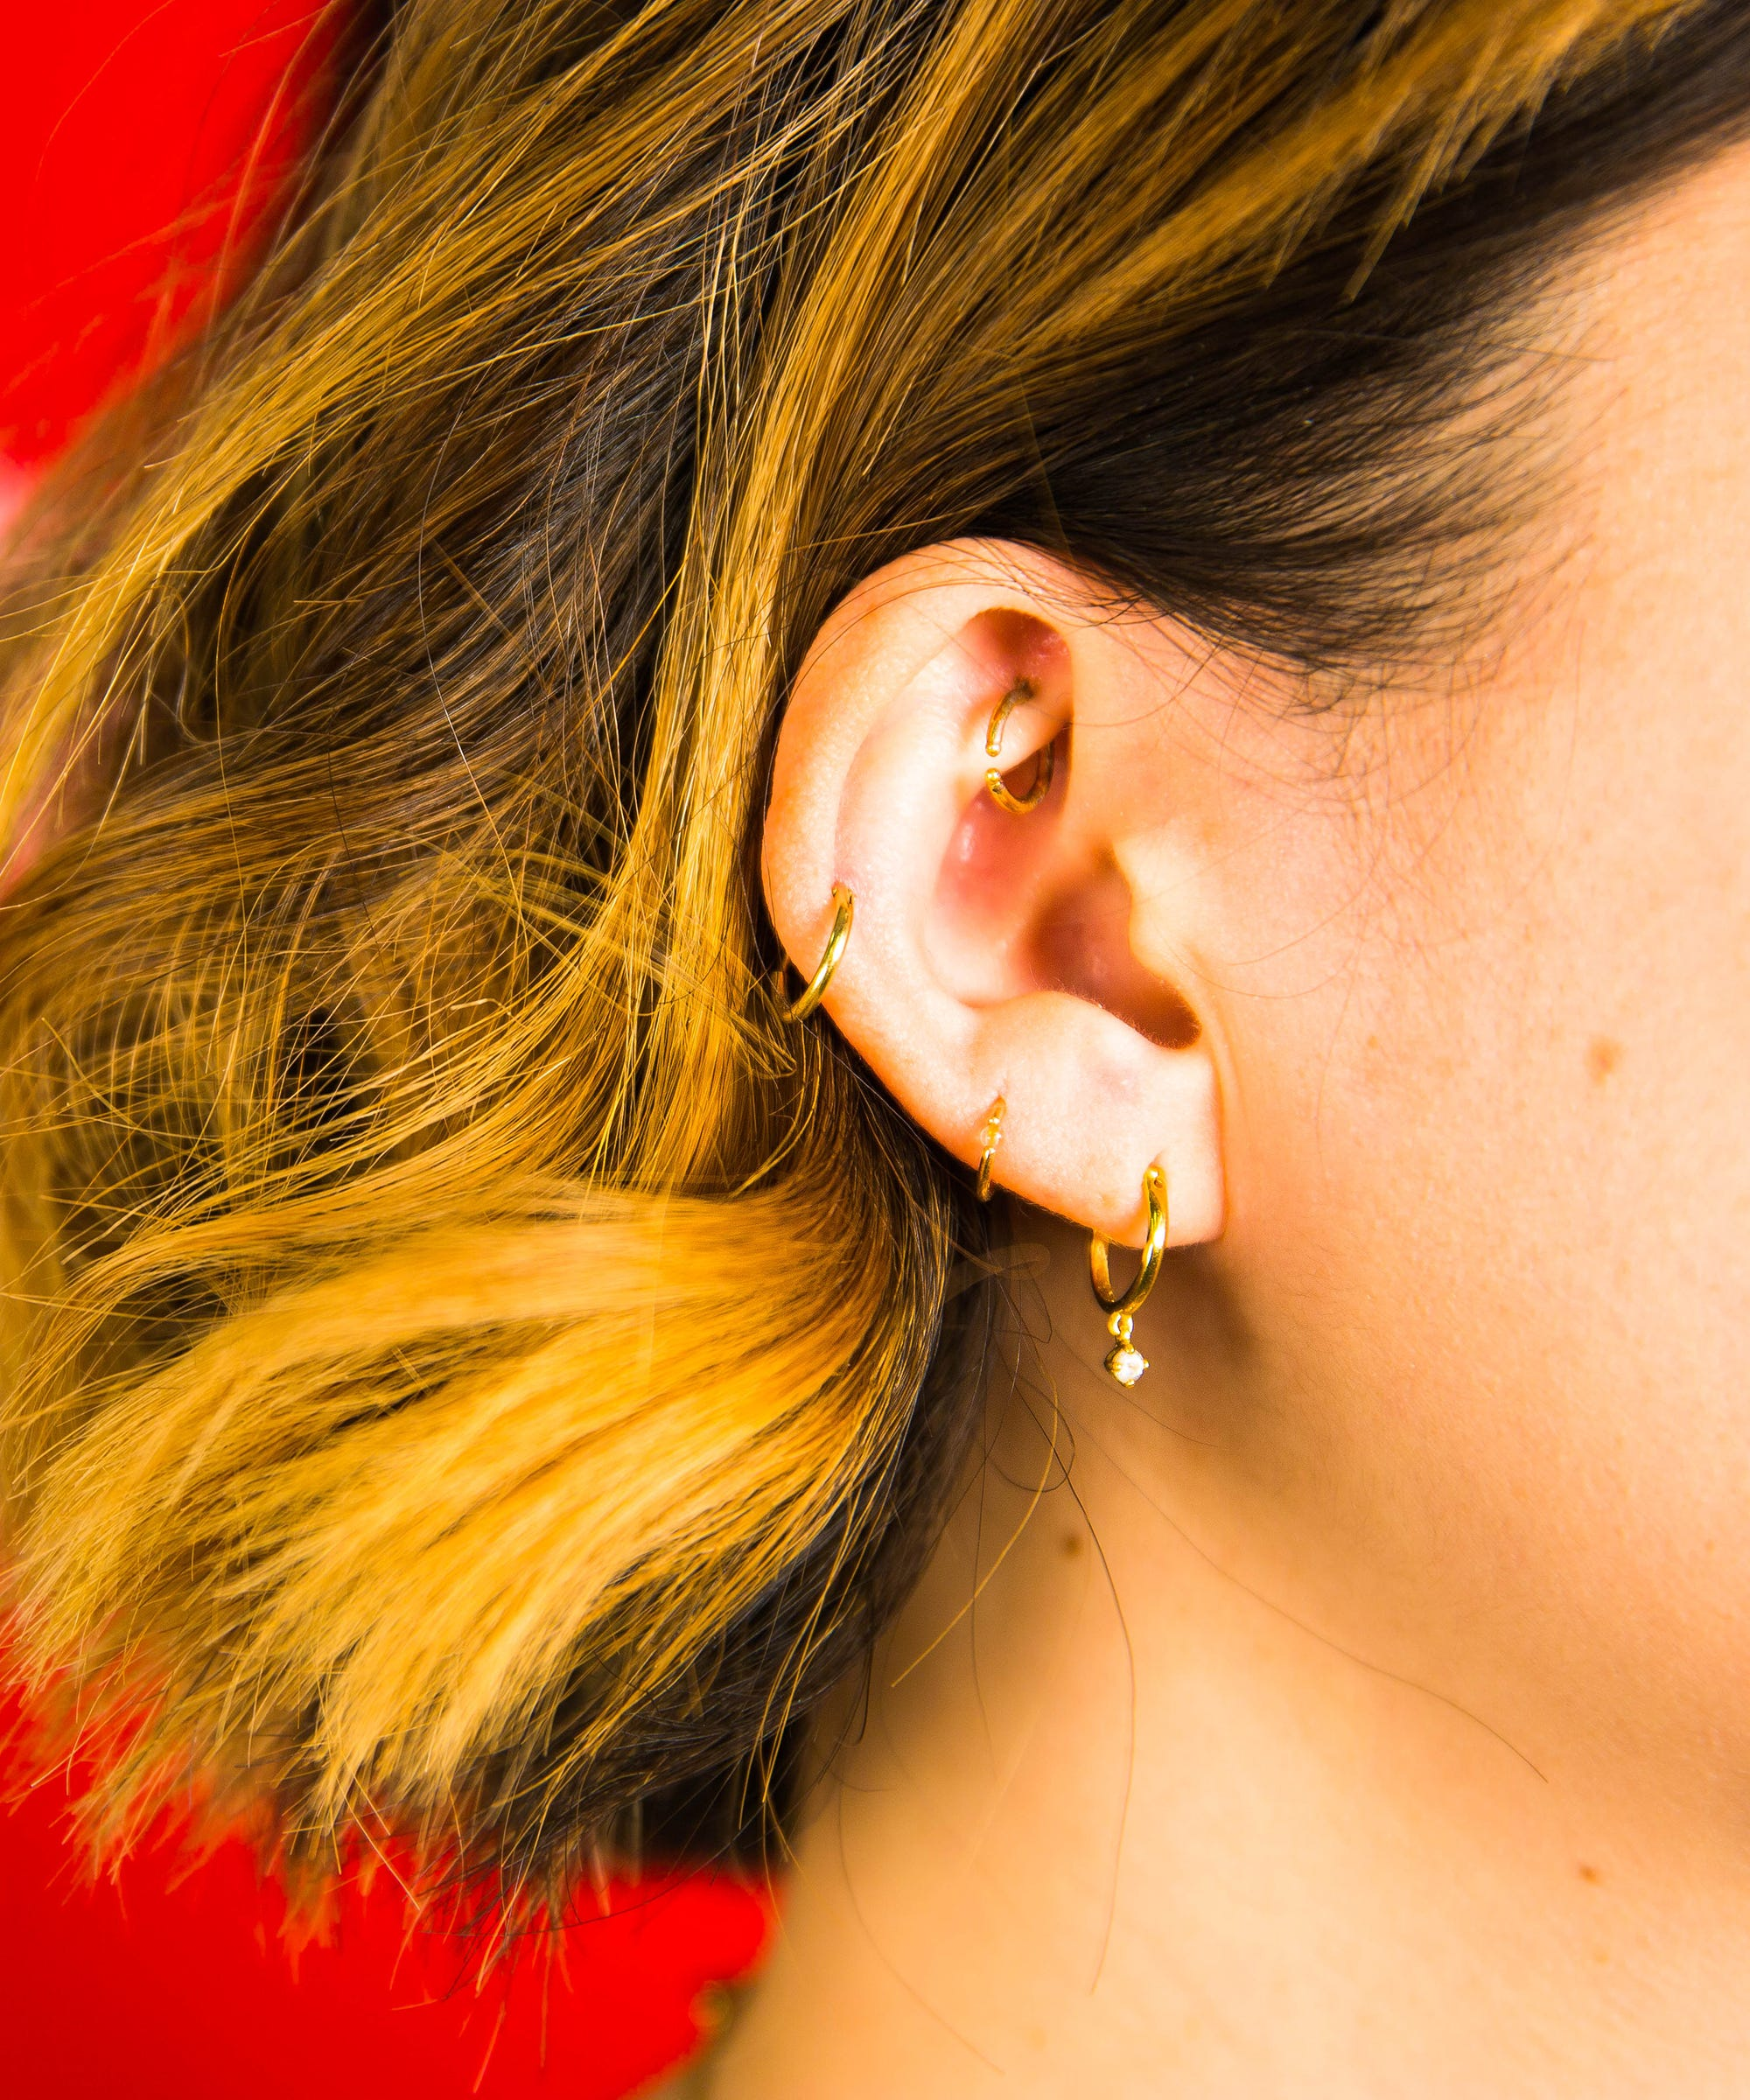 The La Ear Piercing Trends Editors Want For Fall 2018